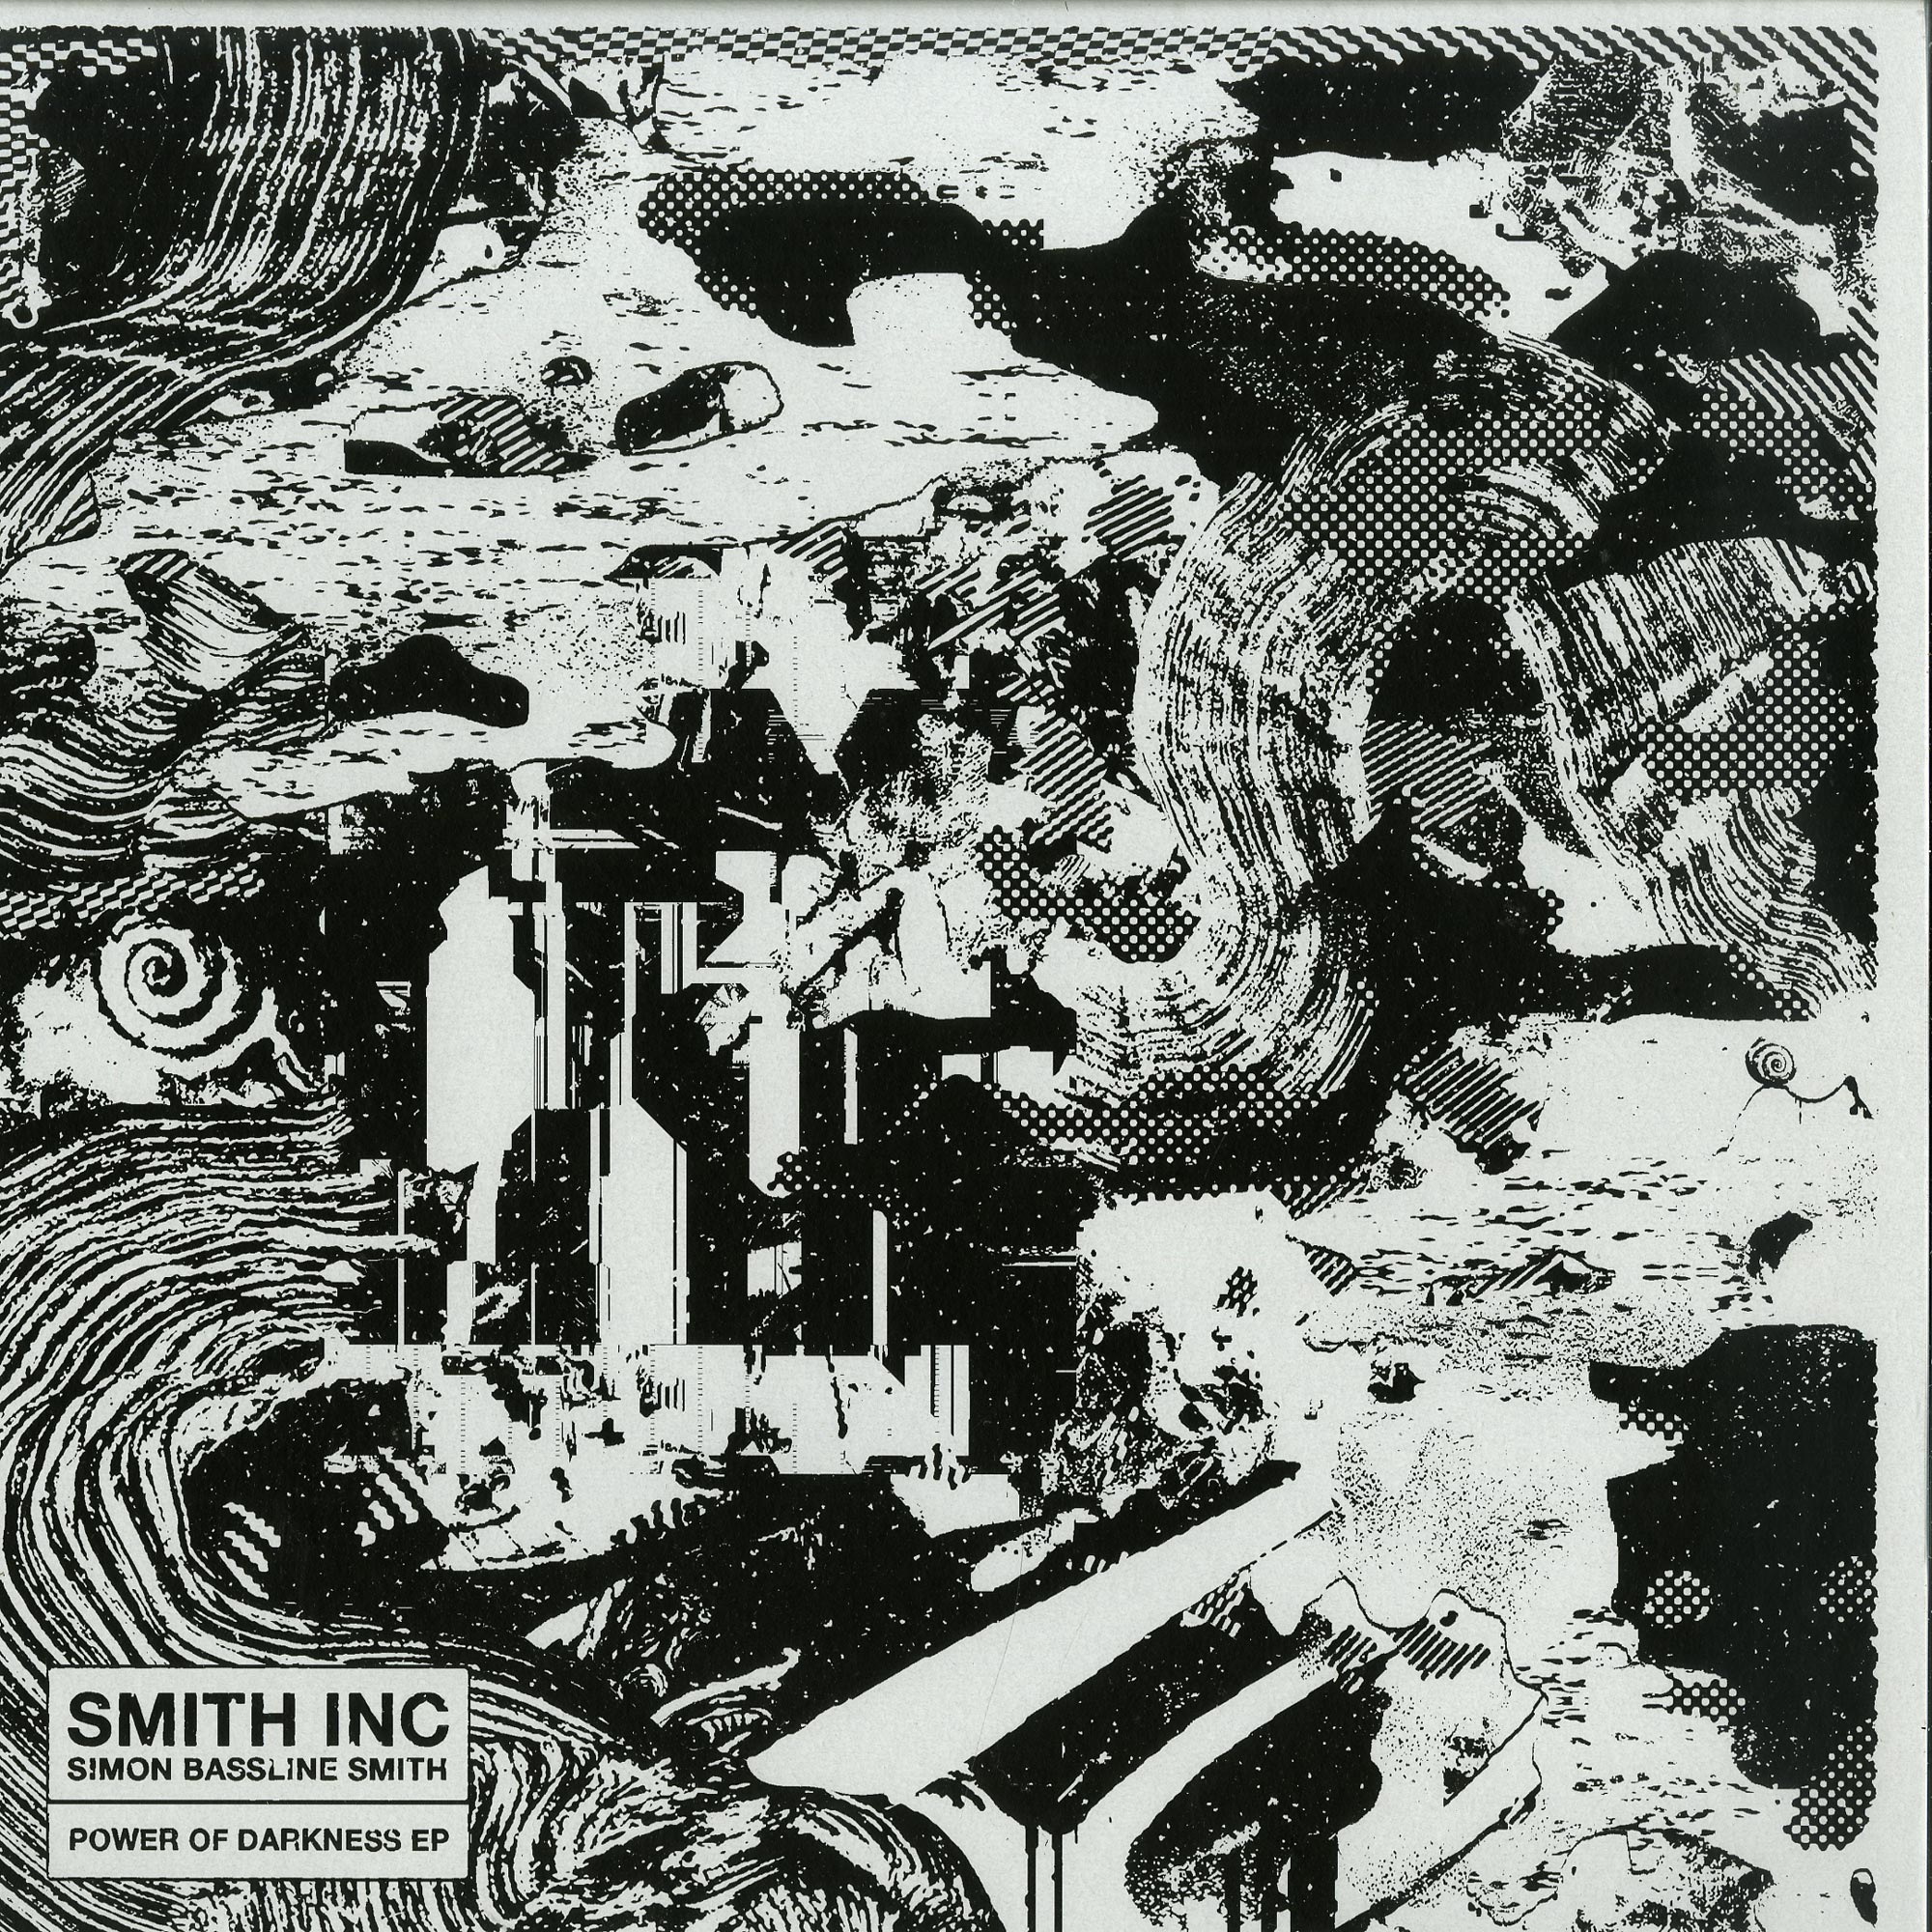 Smith Inc.  - POWER OF DARKNESS EP